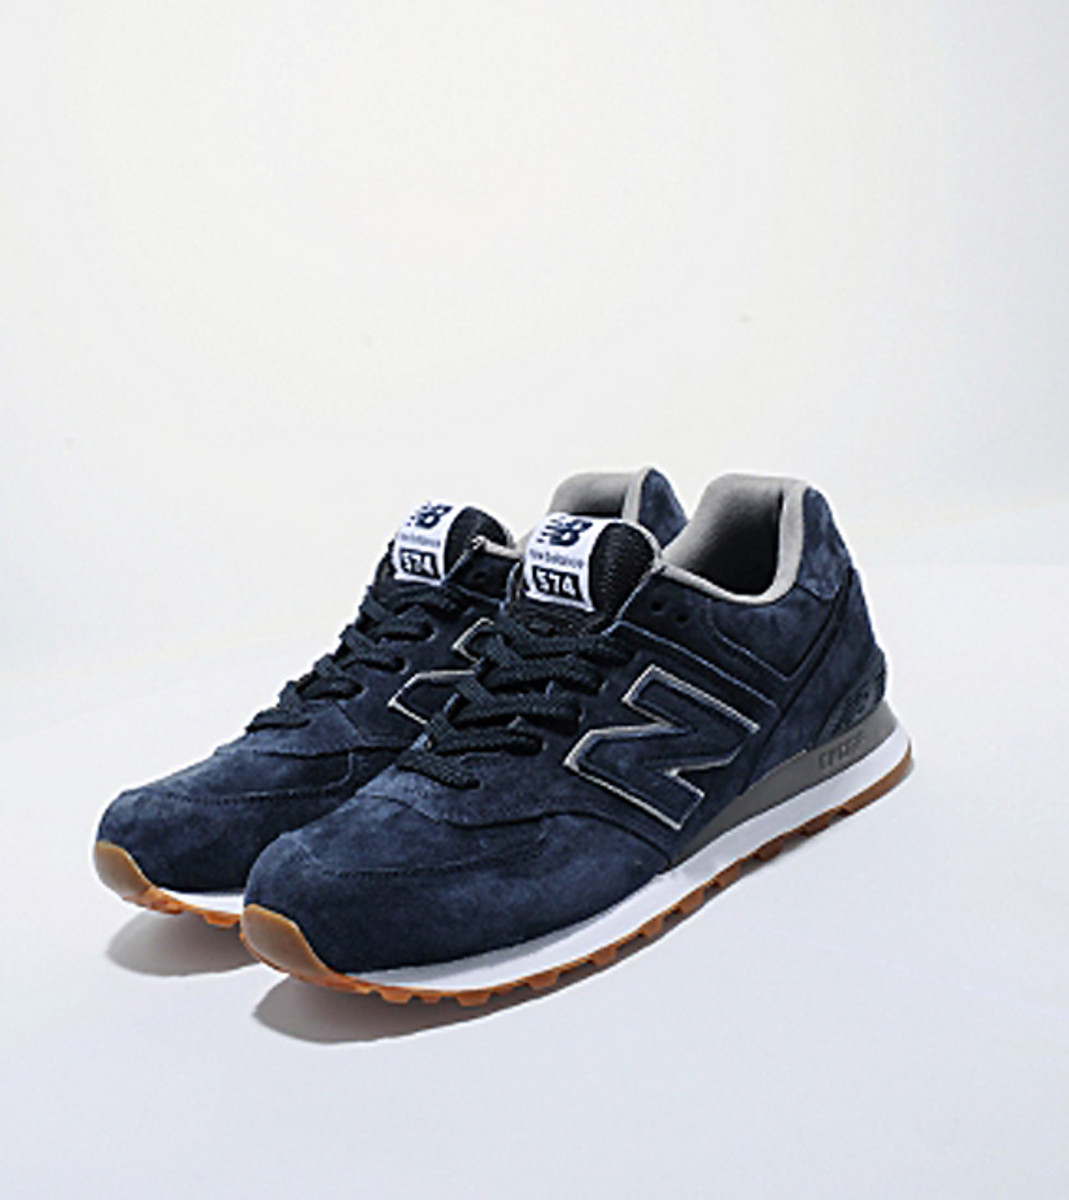 new balance 574 classic suede pack